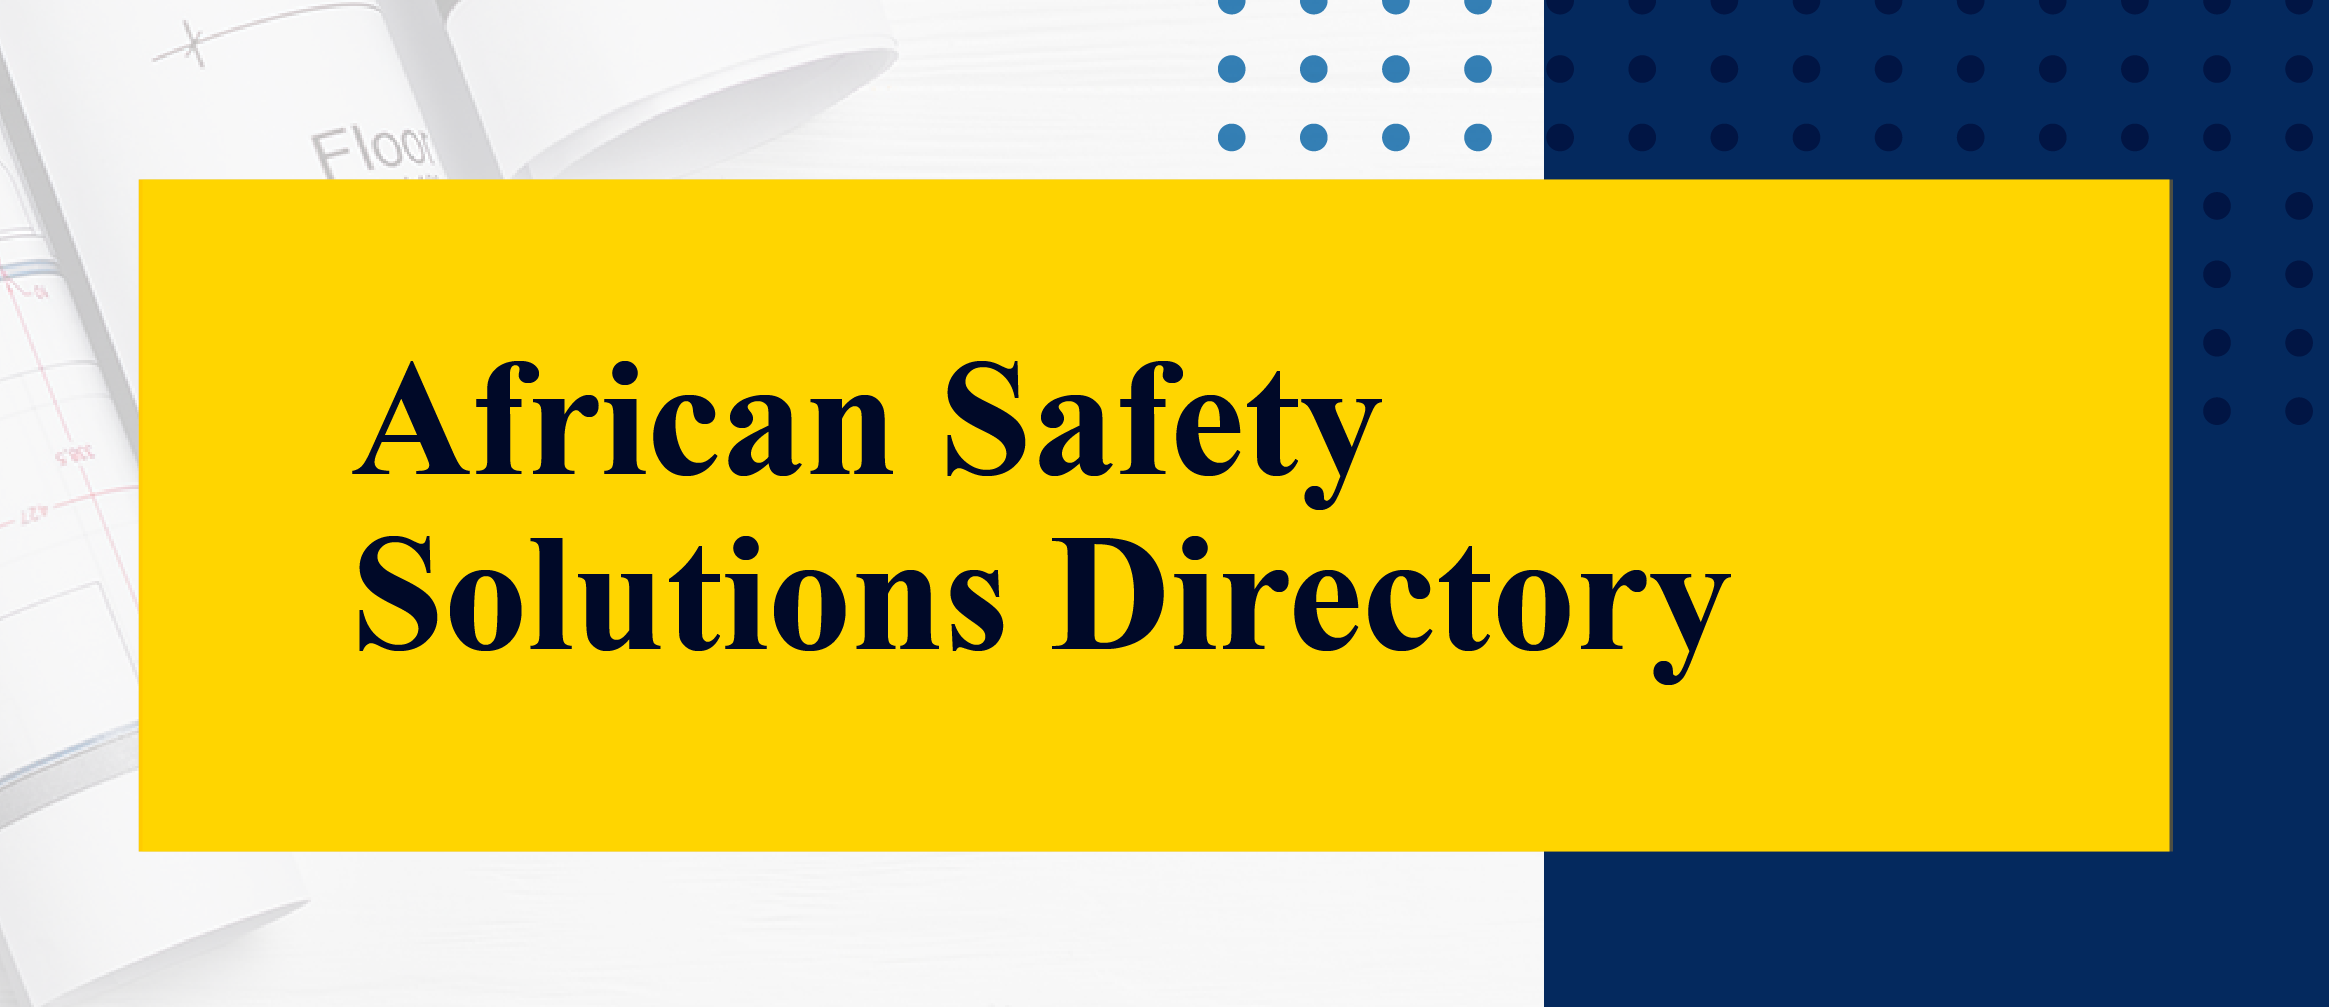 African Safety Solutions Directory